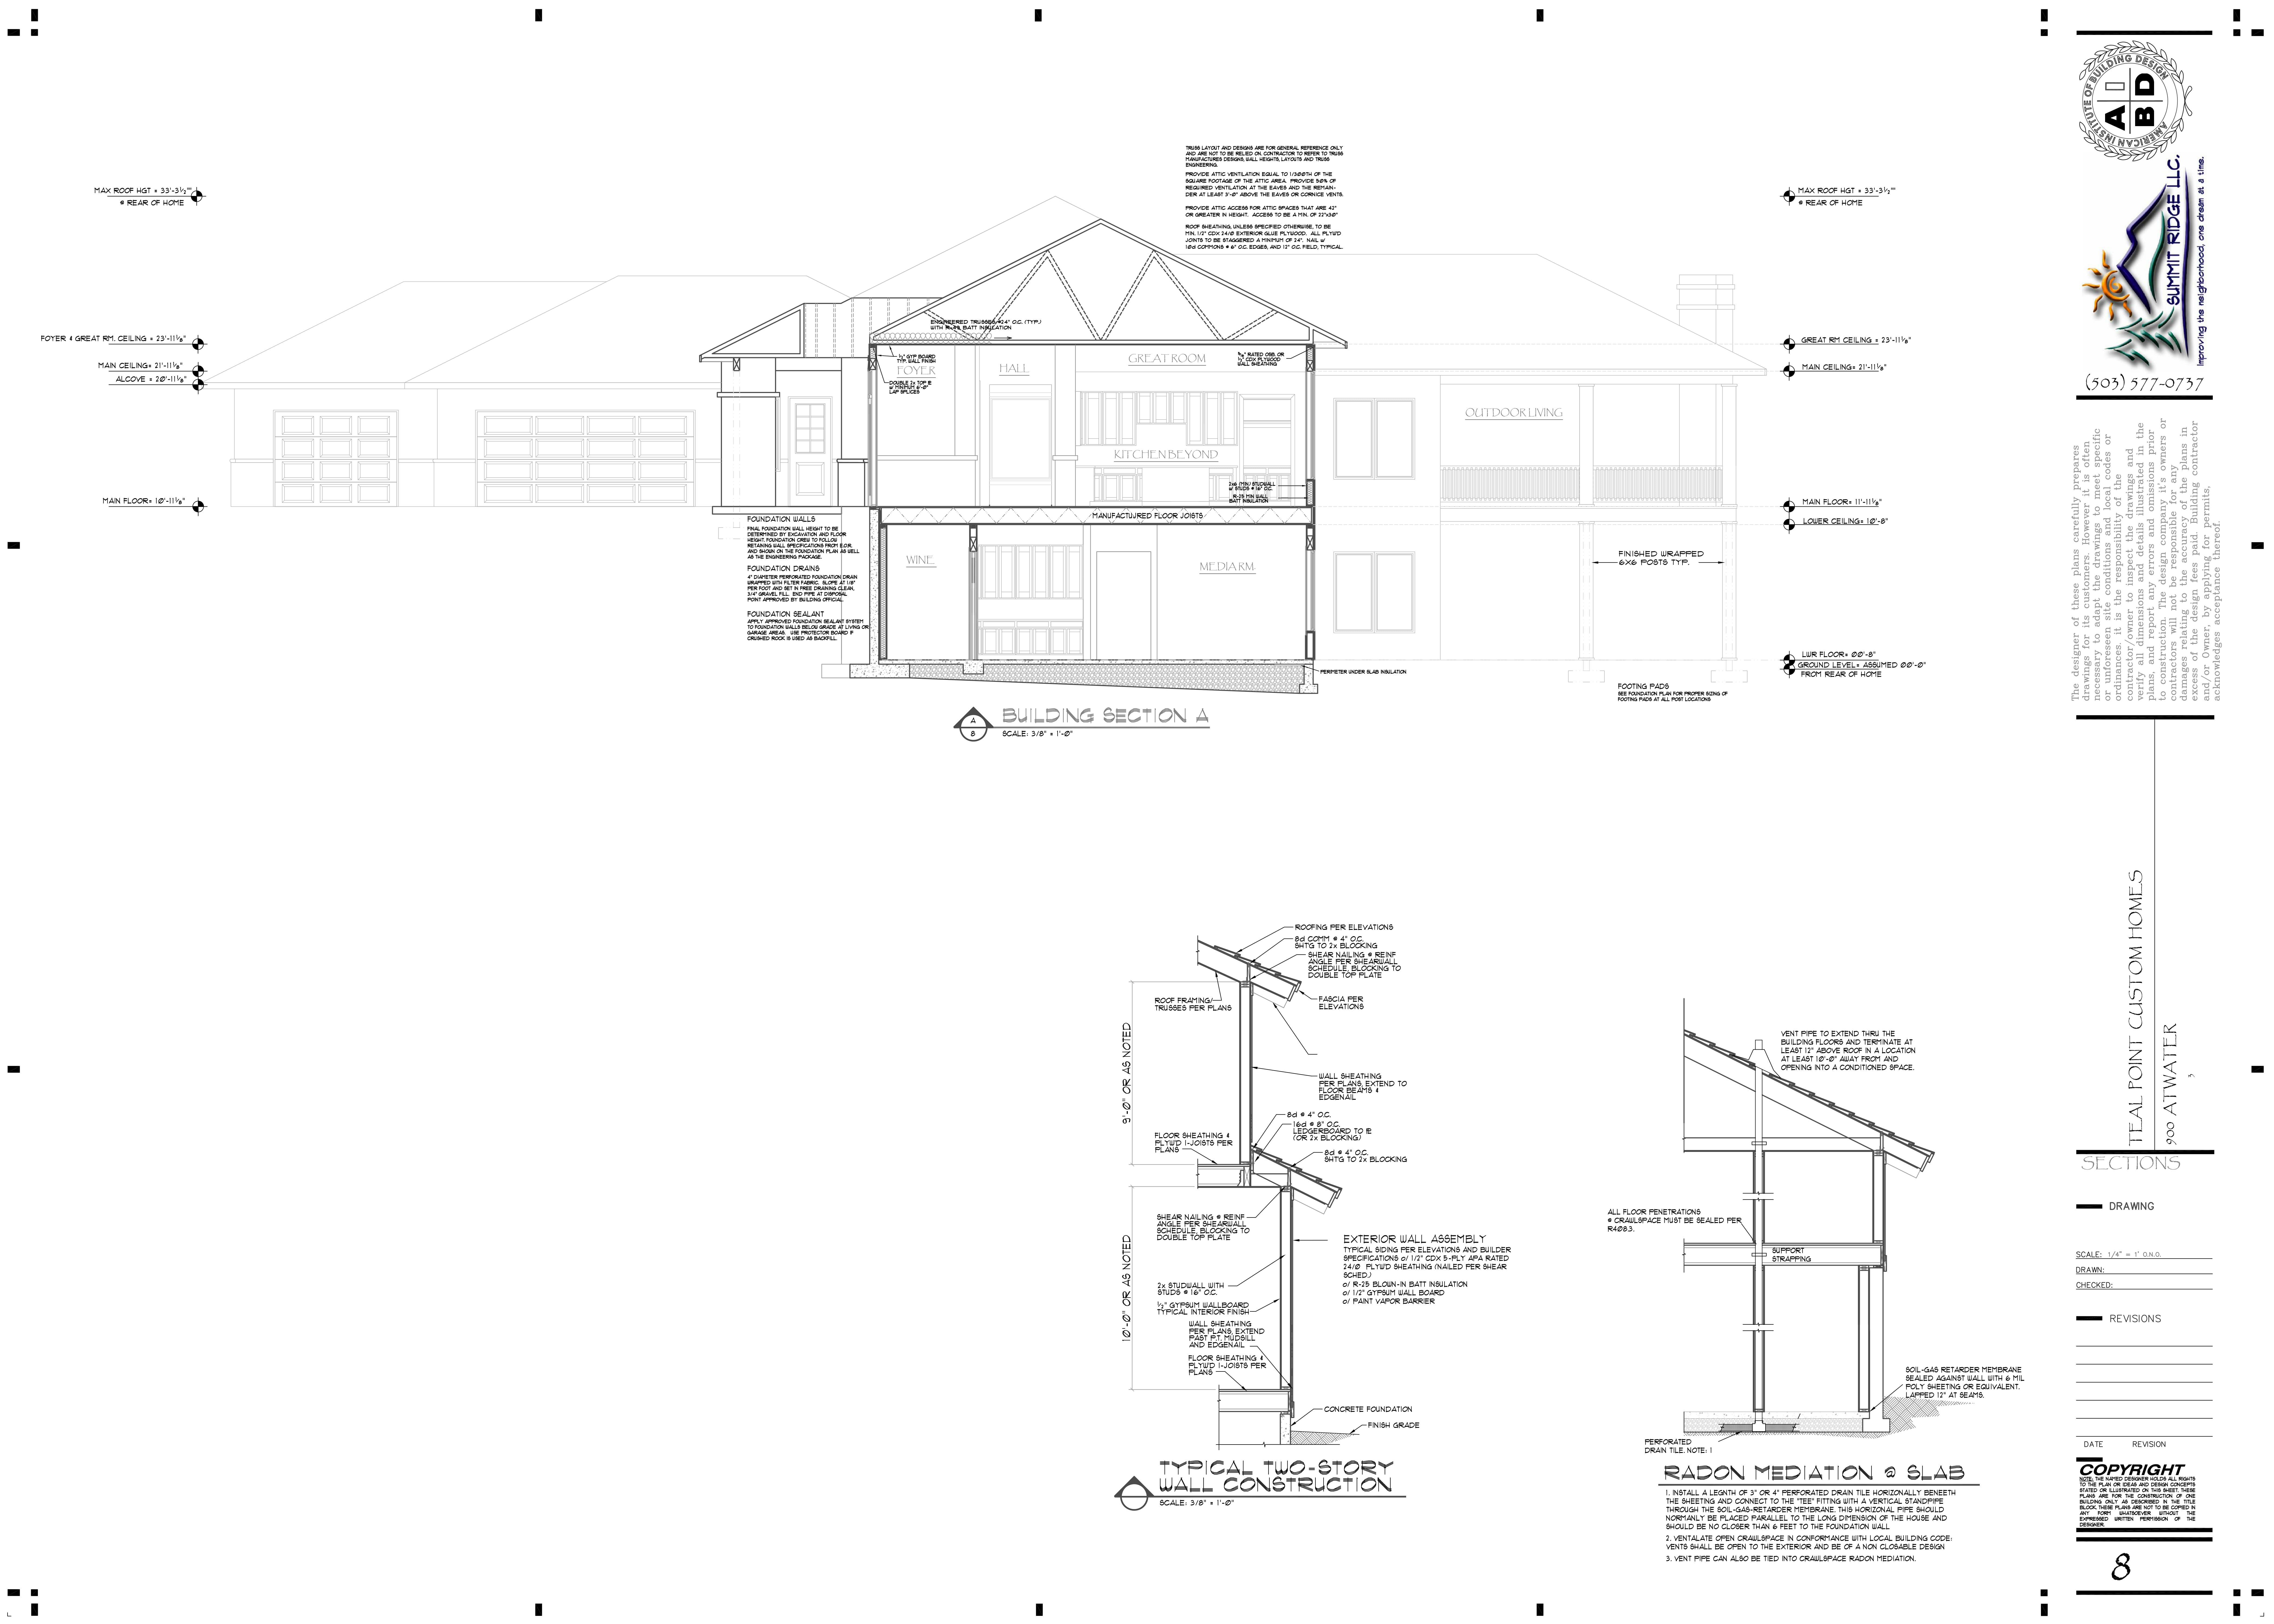 900-atwater-prelim-9-12-16-9-1